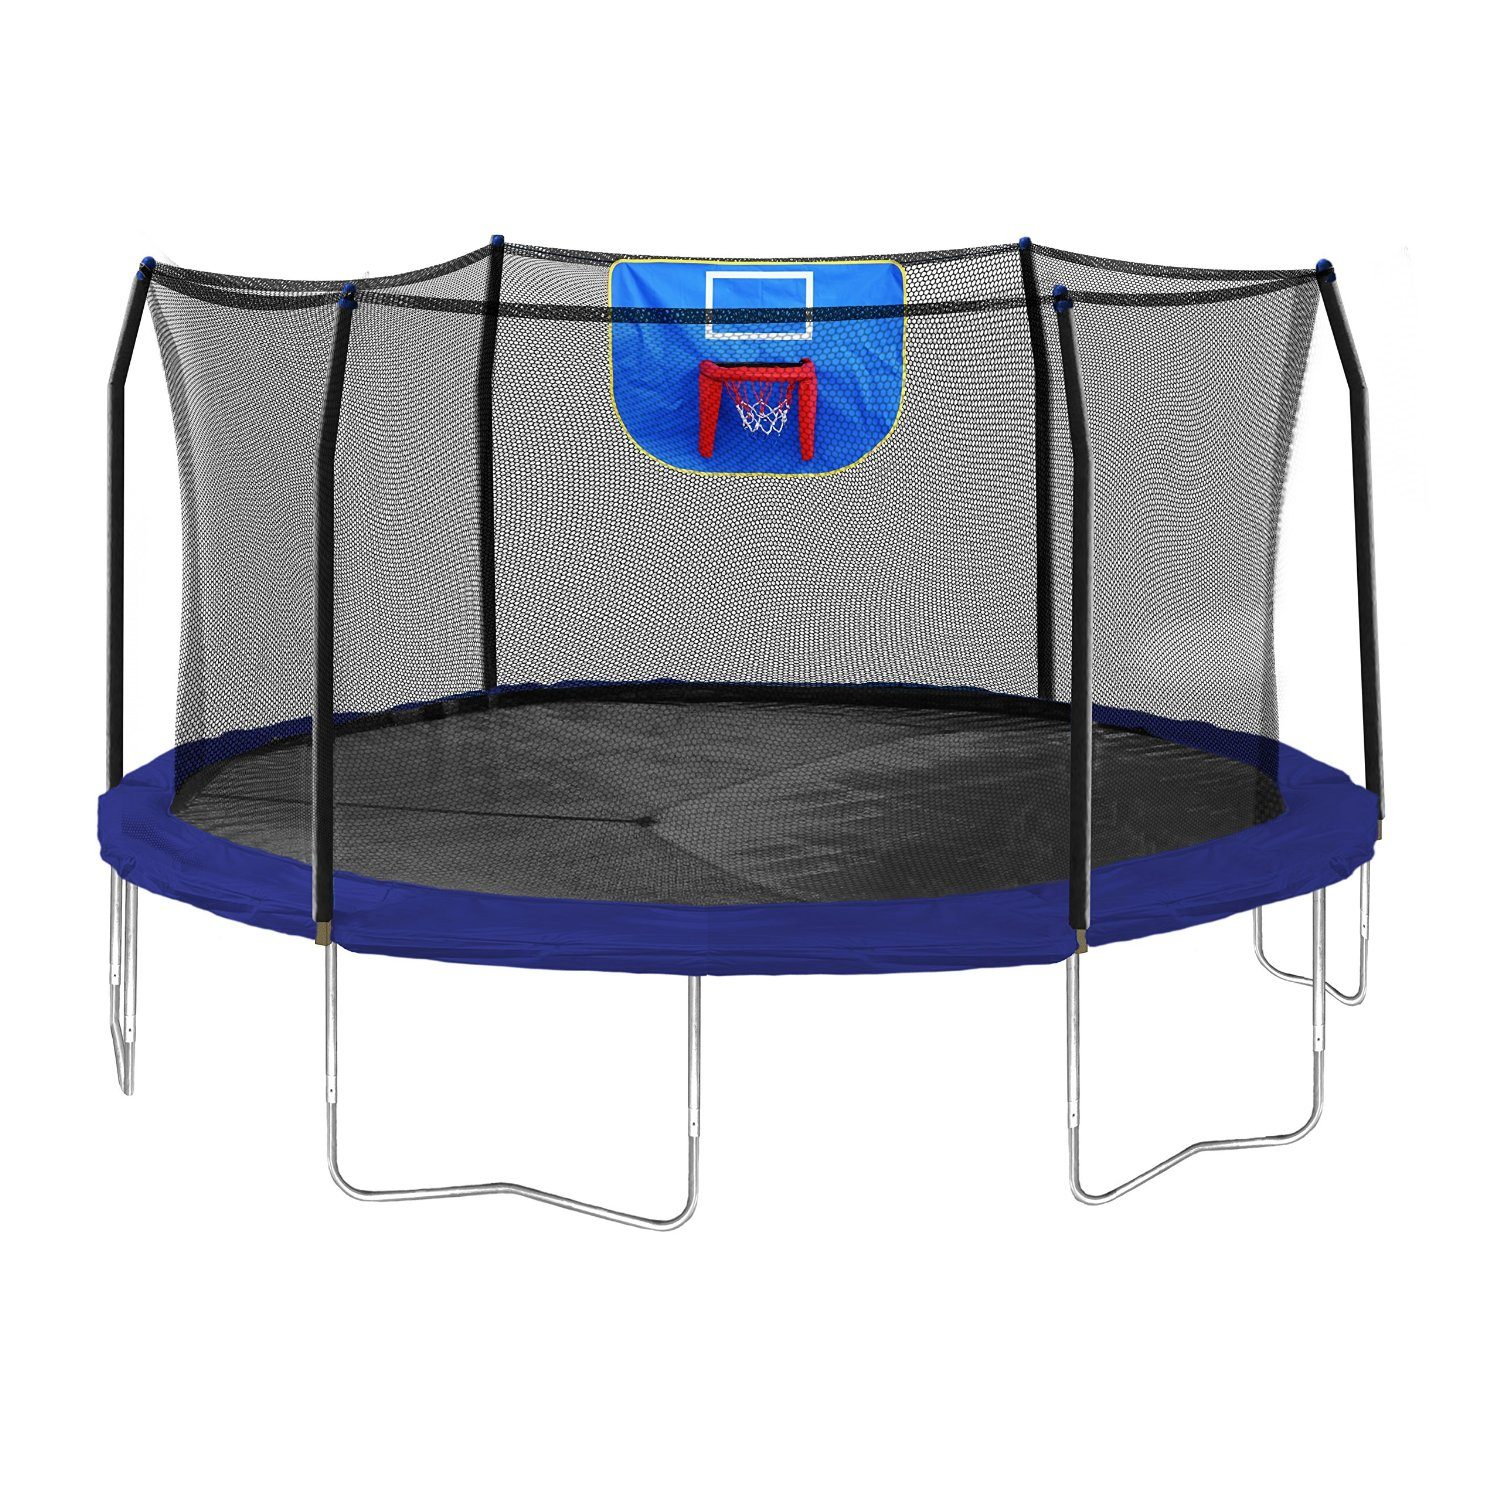 Skywalker Trampolines 15 Foot Sq Trampoline And Safety: The Top 10 Trampolines We Could Find